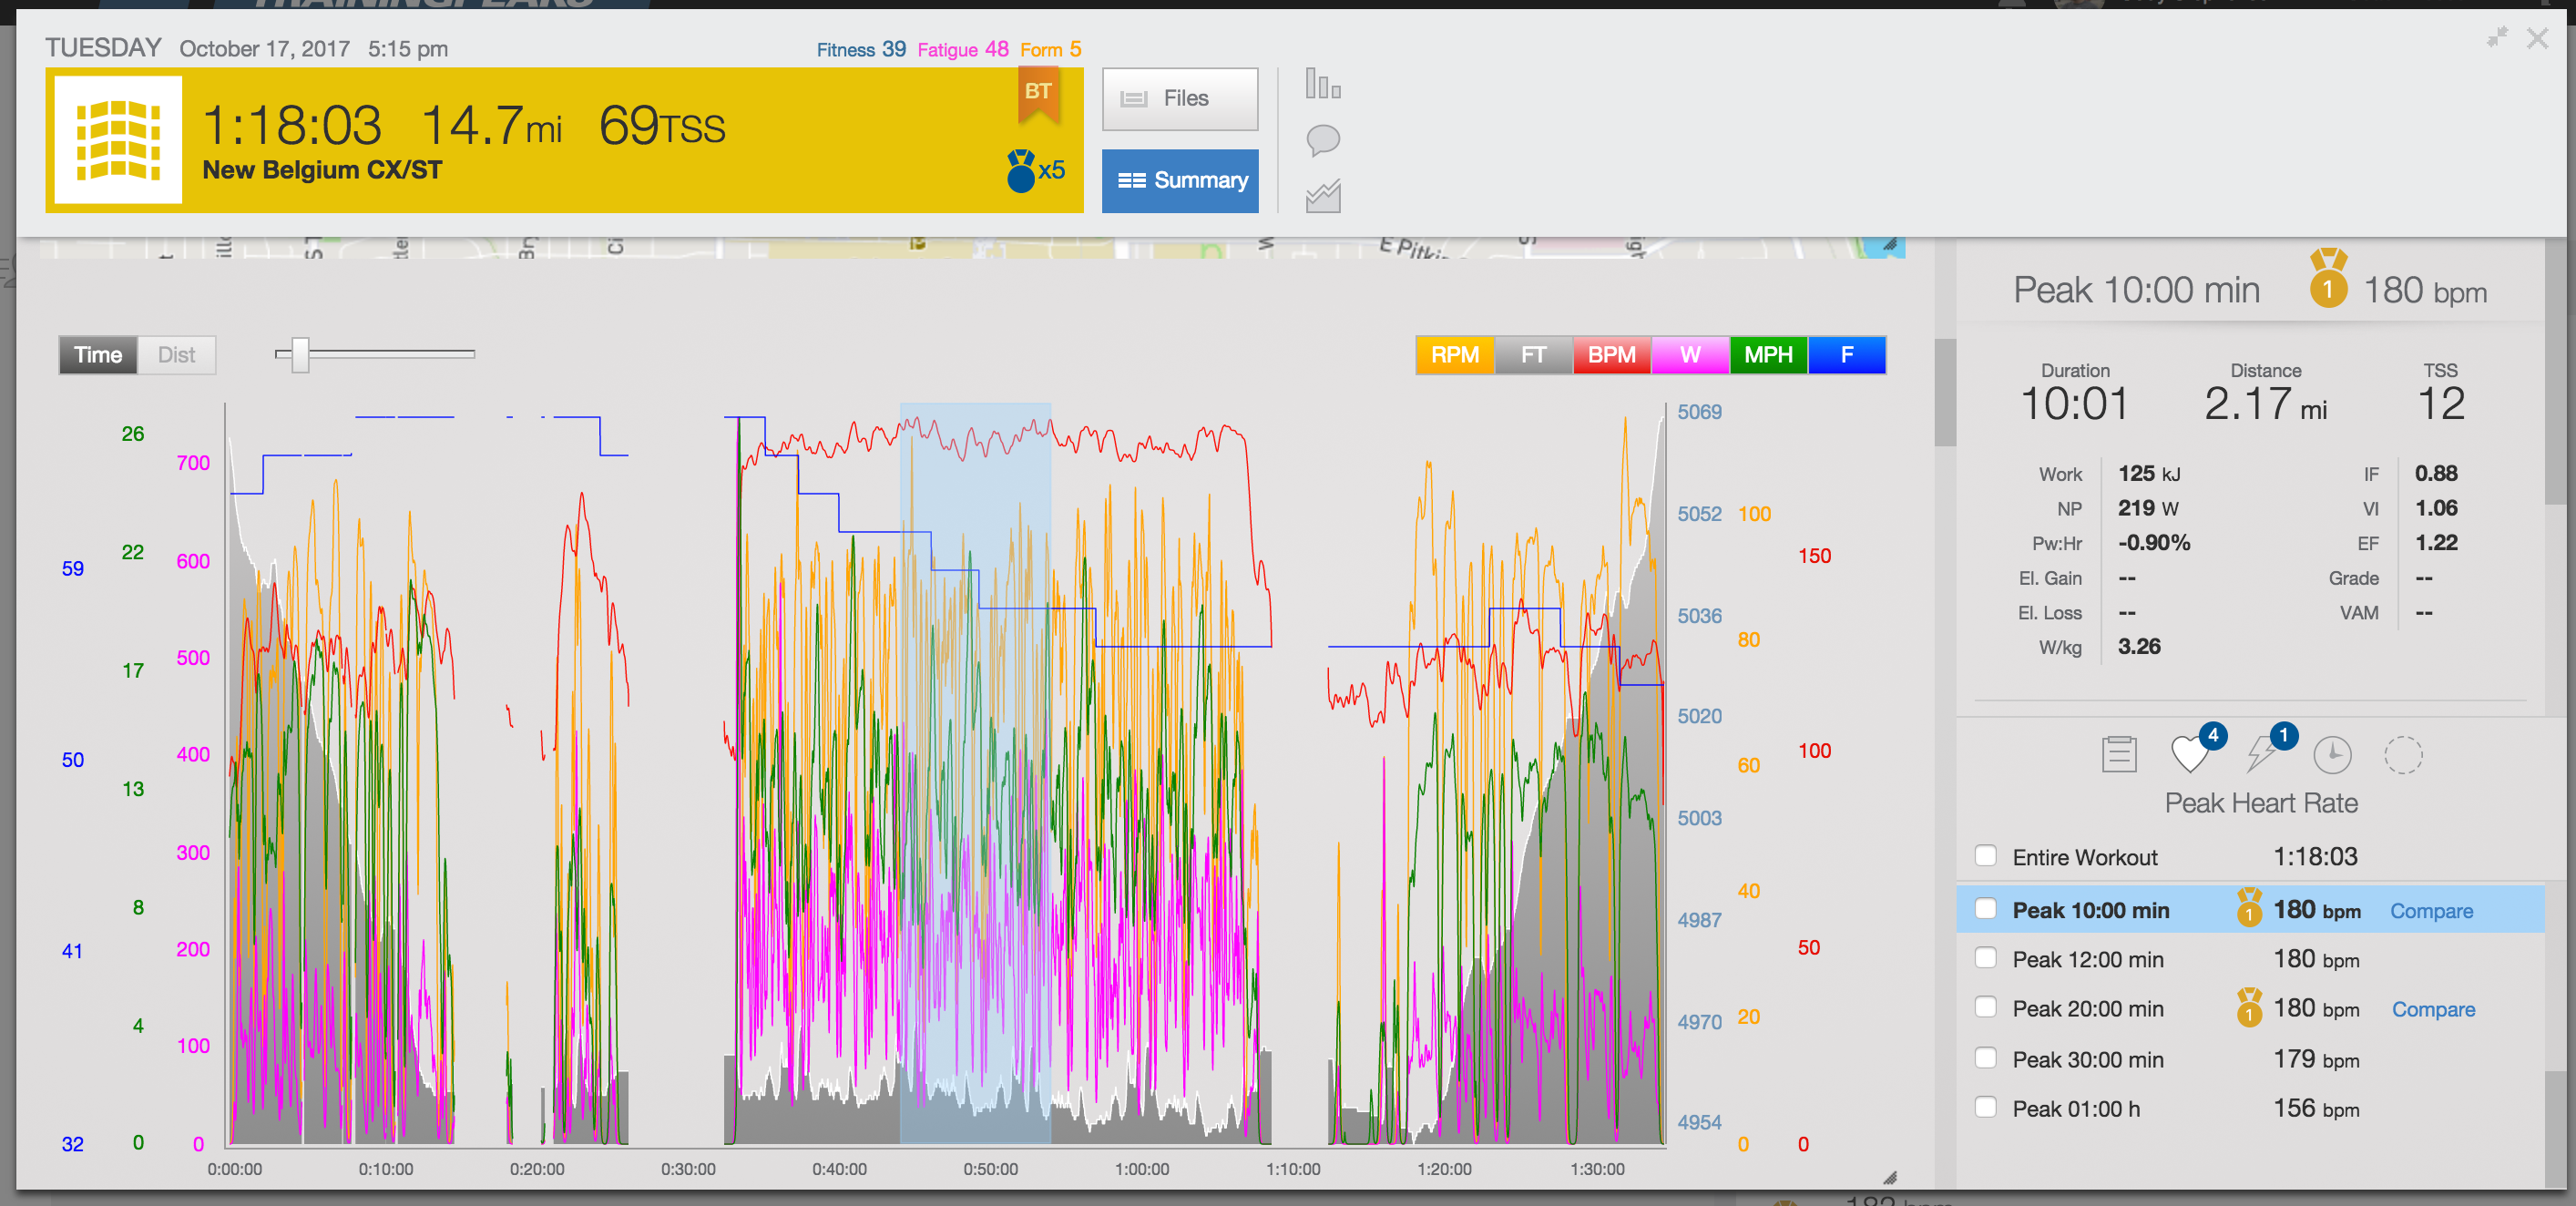 TrainingPeaks _-_ Plan_your_training__track_your_workouts_and_measure_your_progress_3.png